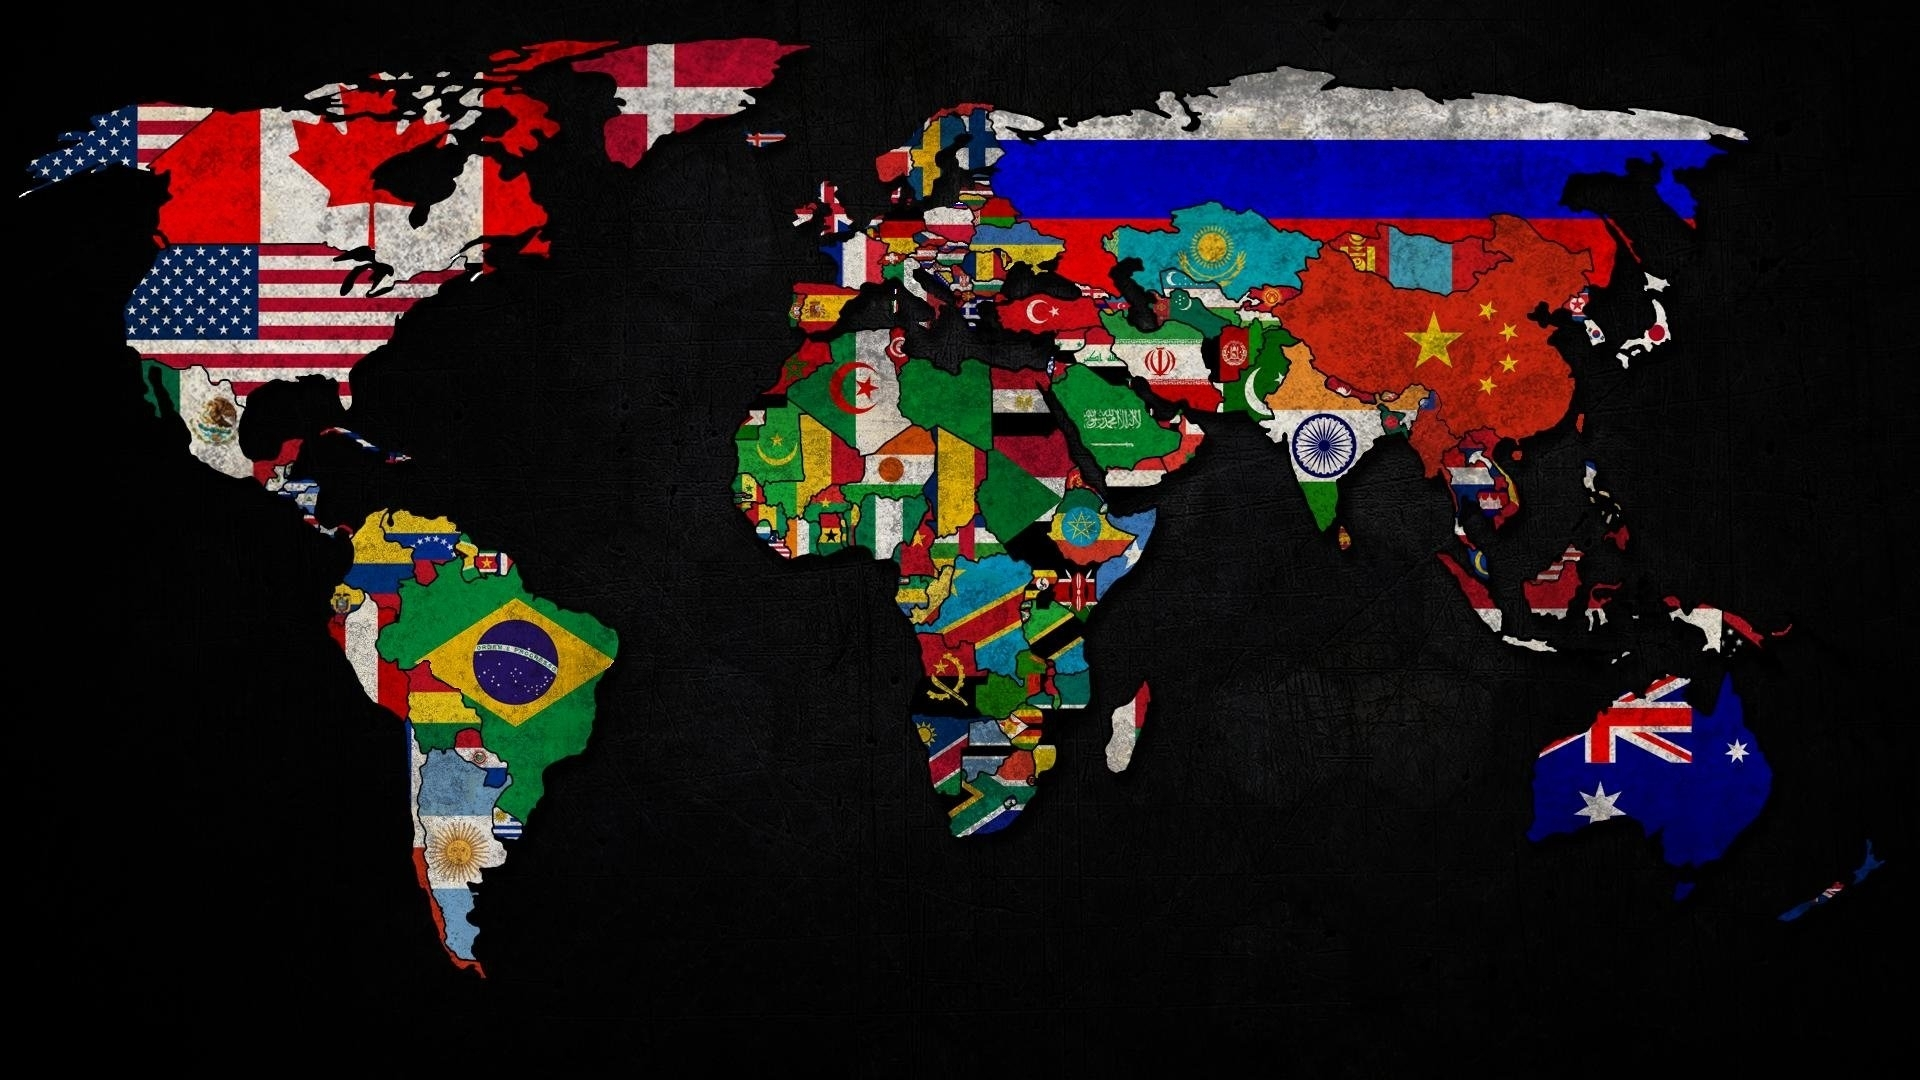 151 world map hd wallpapers   background images - wallpaper abyss